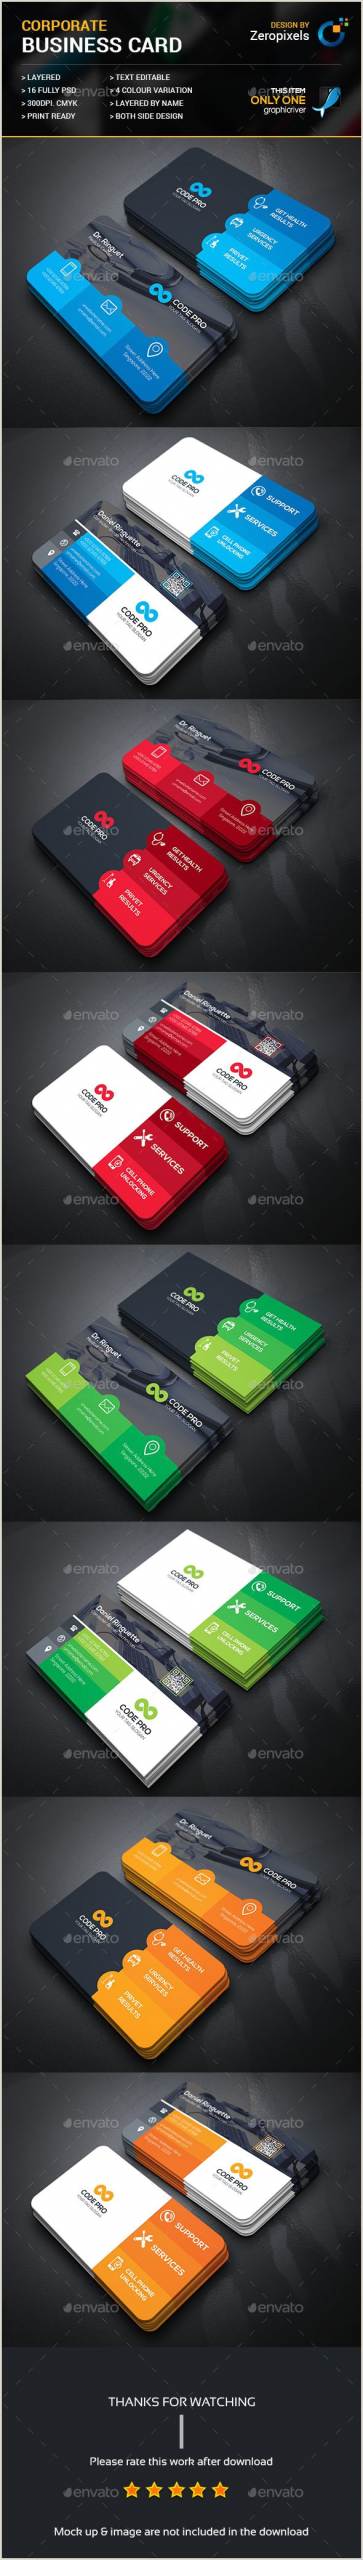 Unique Business Cards Program Free Download Doctor & Puter Service Business Card Template Psd